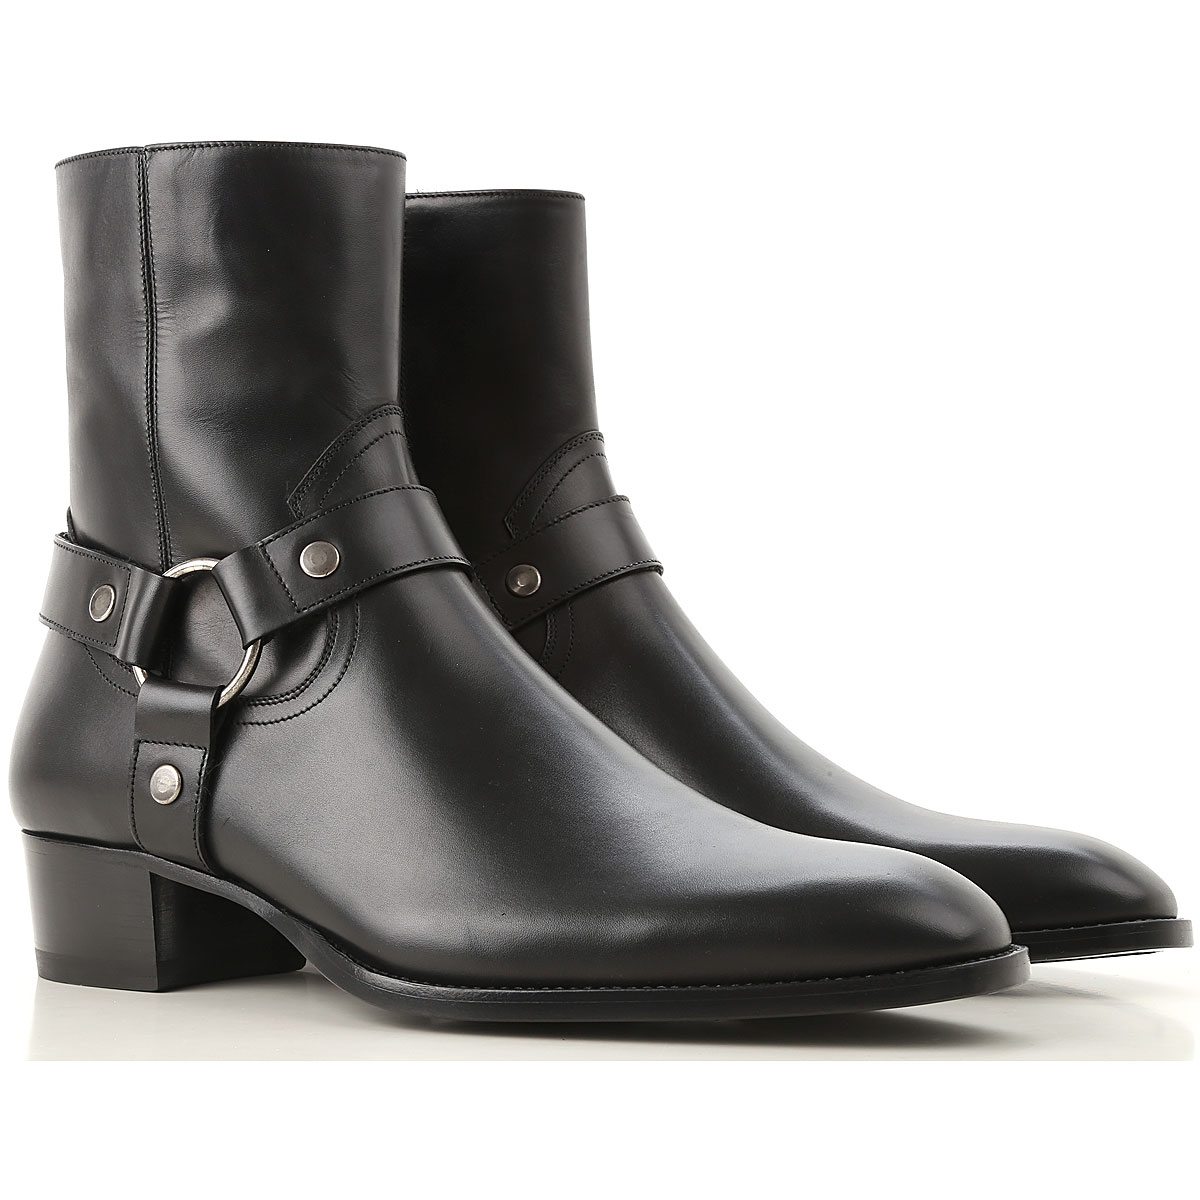 Image of Yves Saint Laurent Boots for Men, Booties, Black, Leather, 2017, 11.5 7.5 8 9